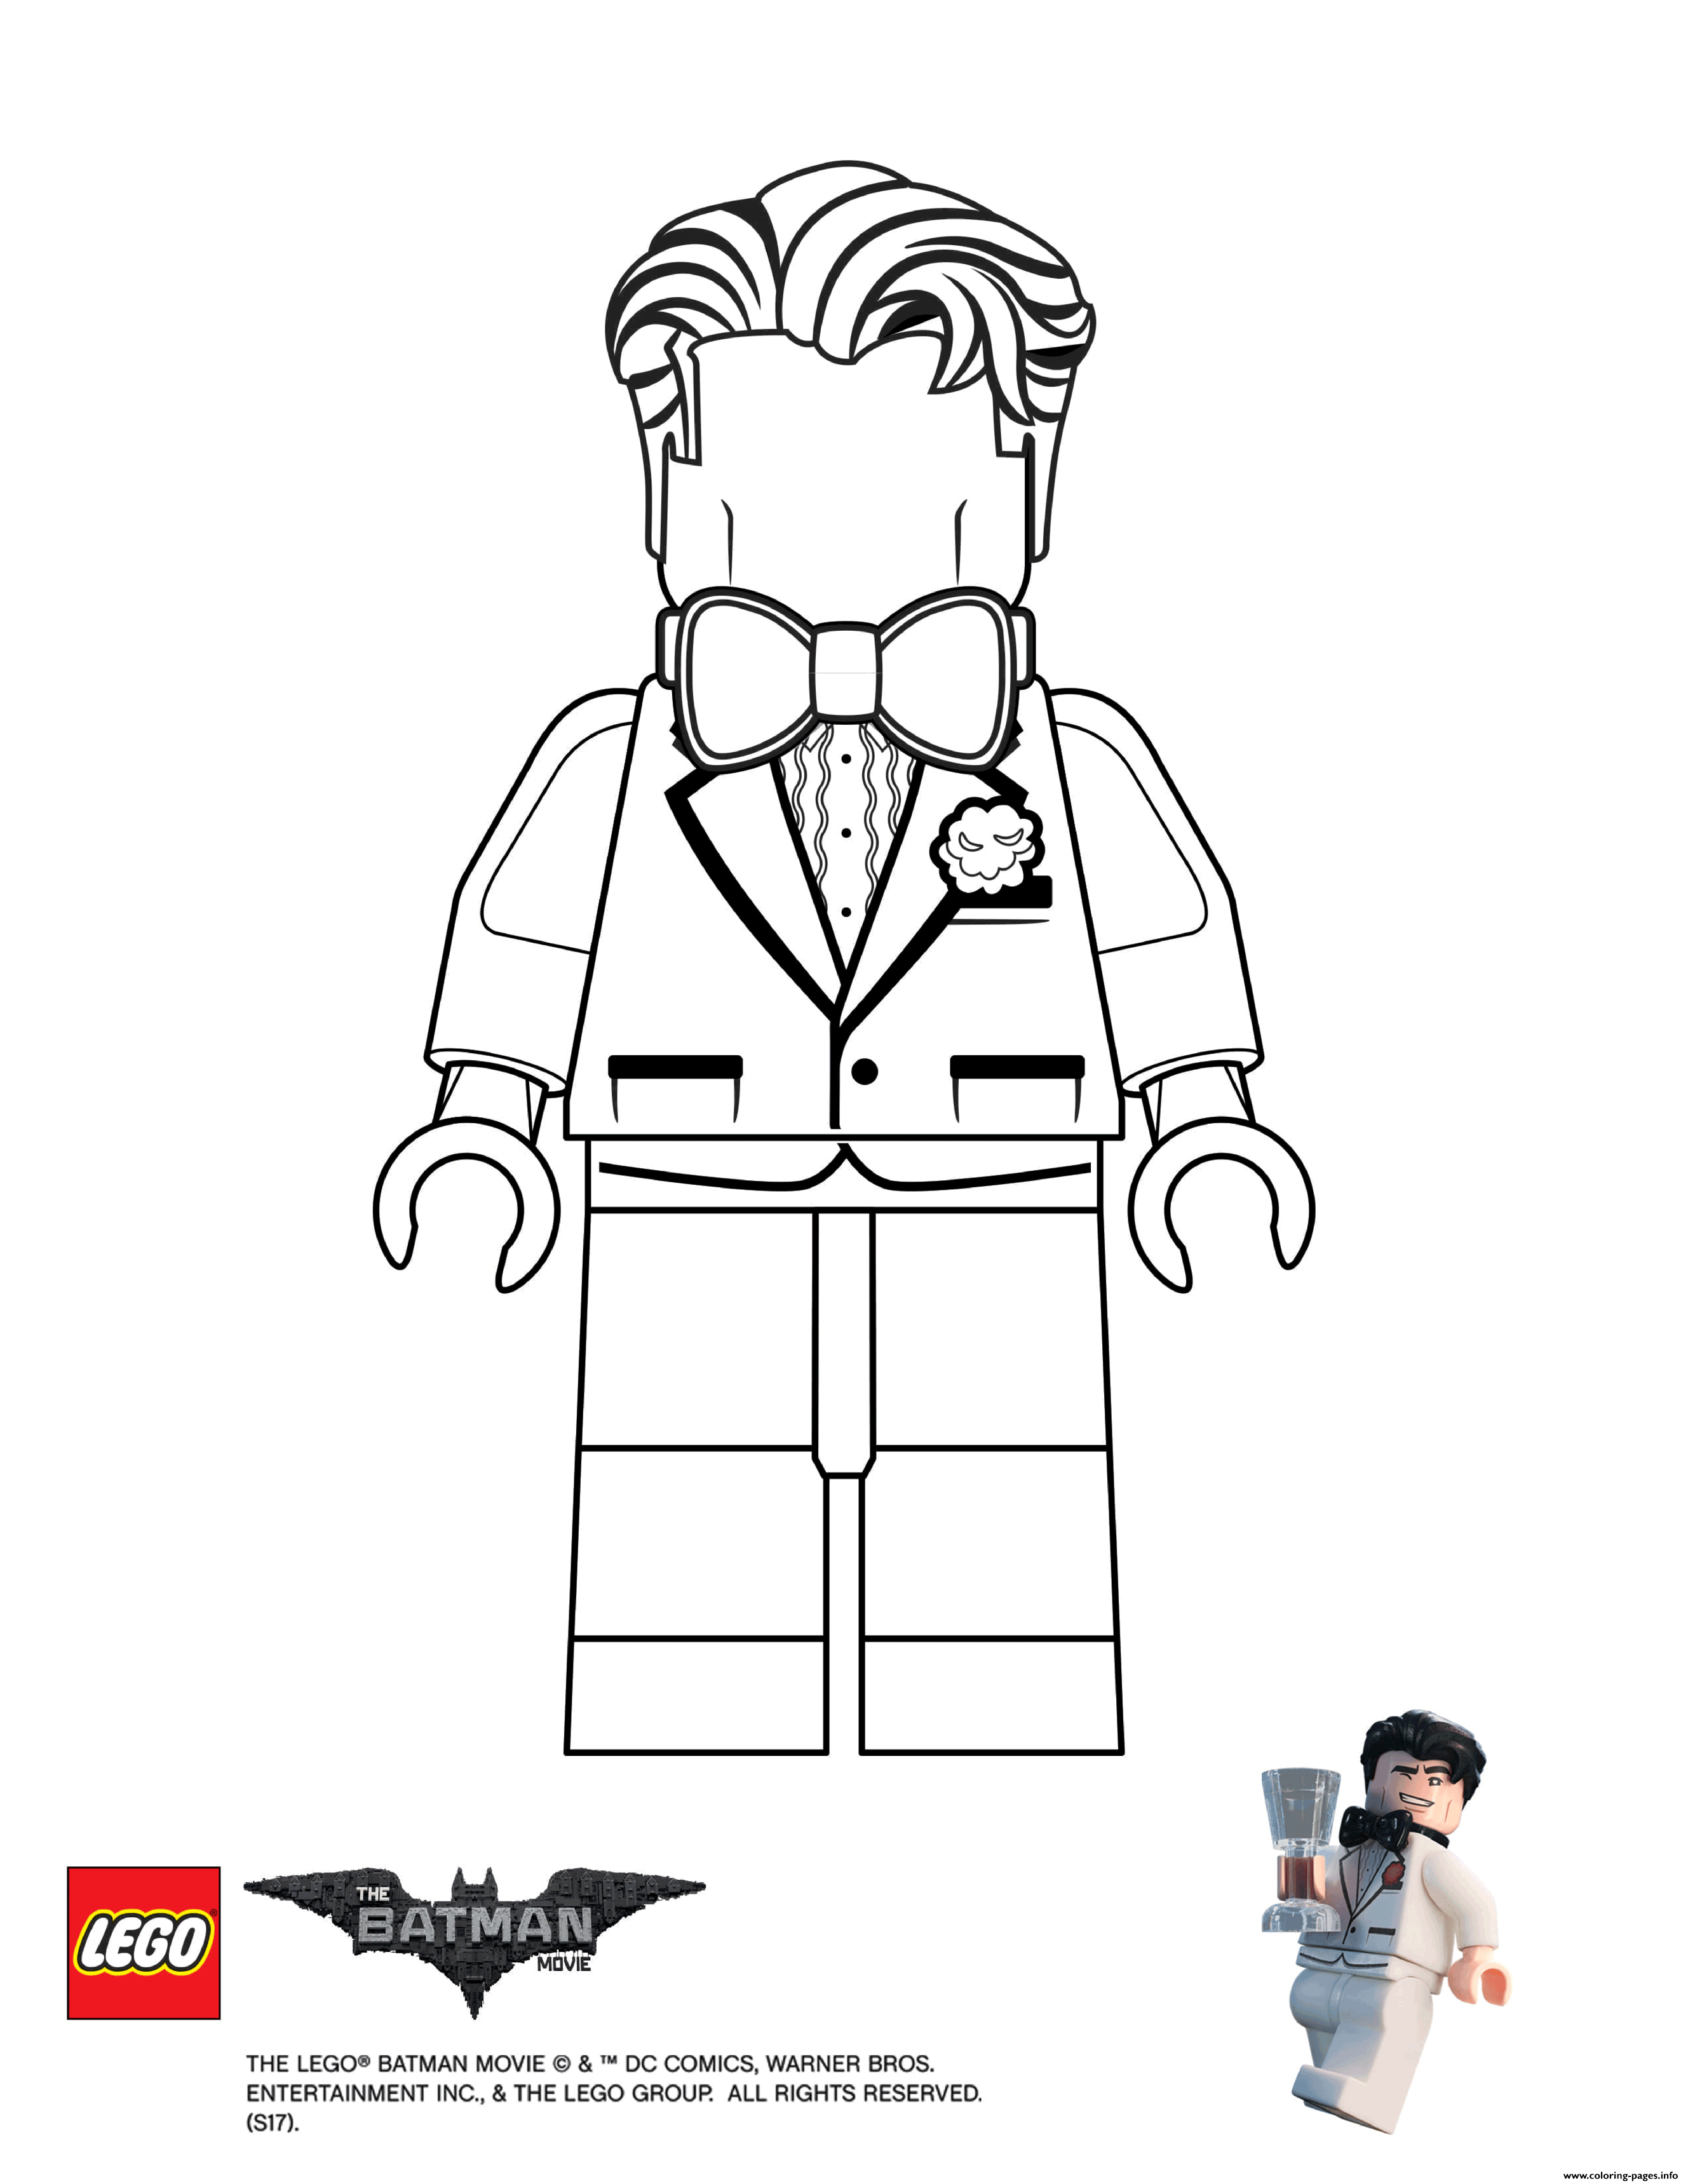 Bruce Lego Batman Movie Coloring Pages Printable